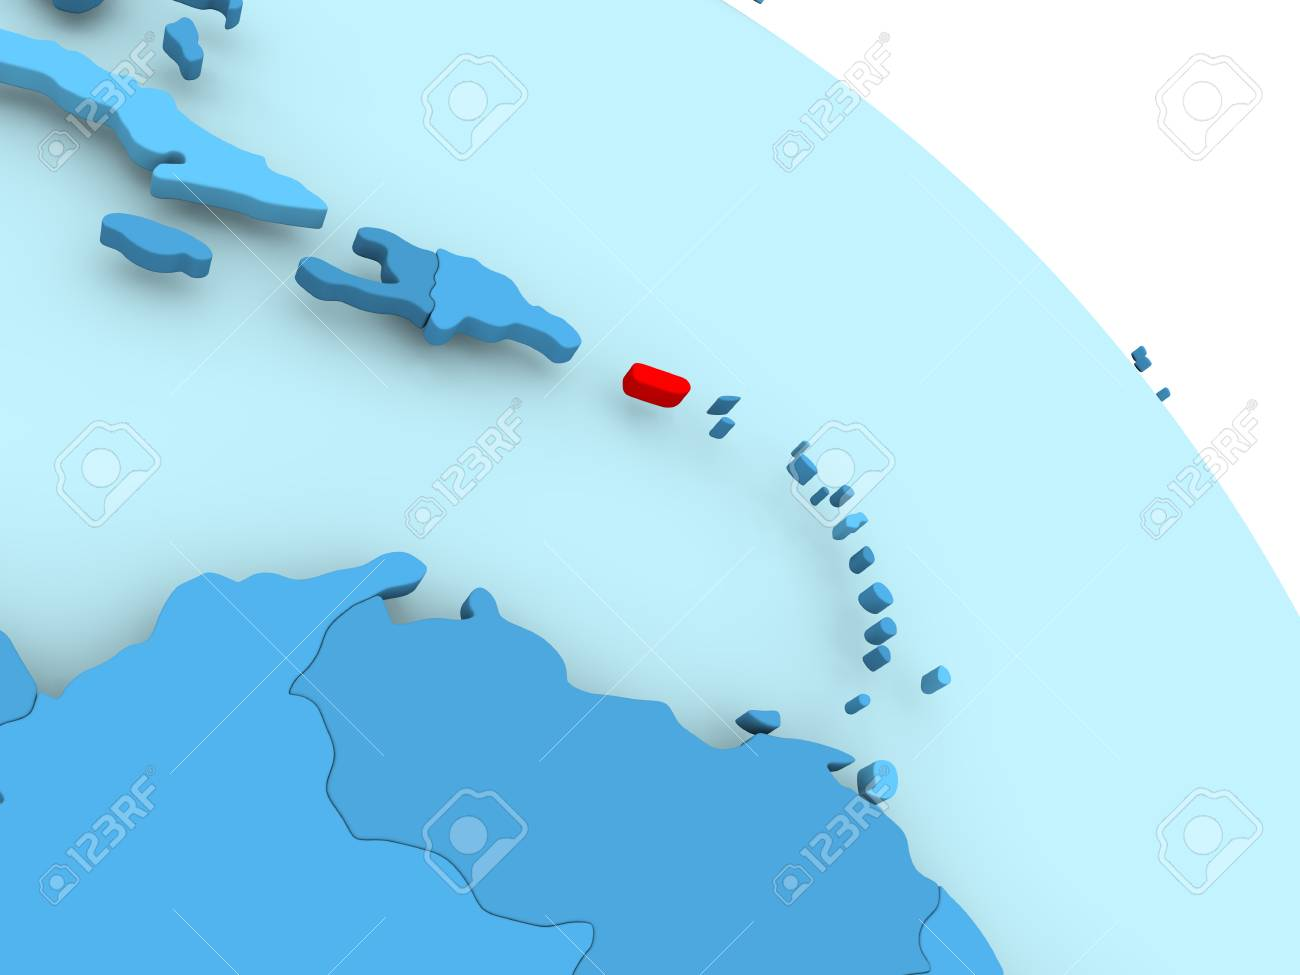 Puerto Rico Highlighted On Blue 3d Model Of Political Globe Stock